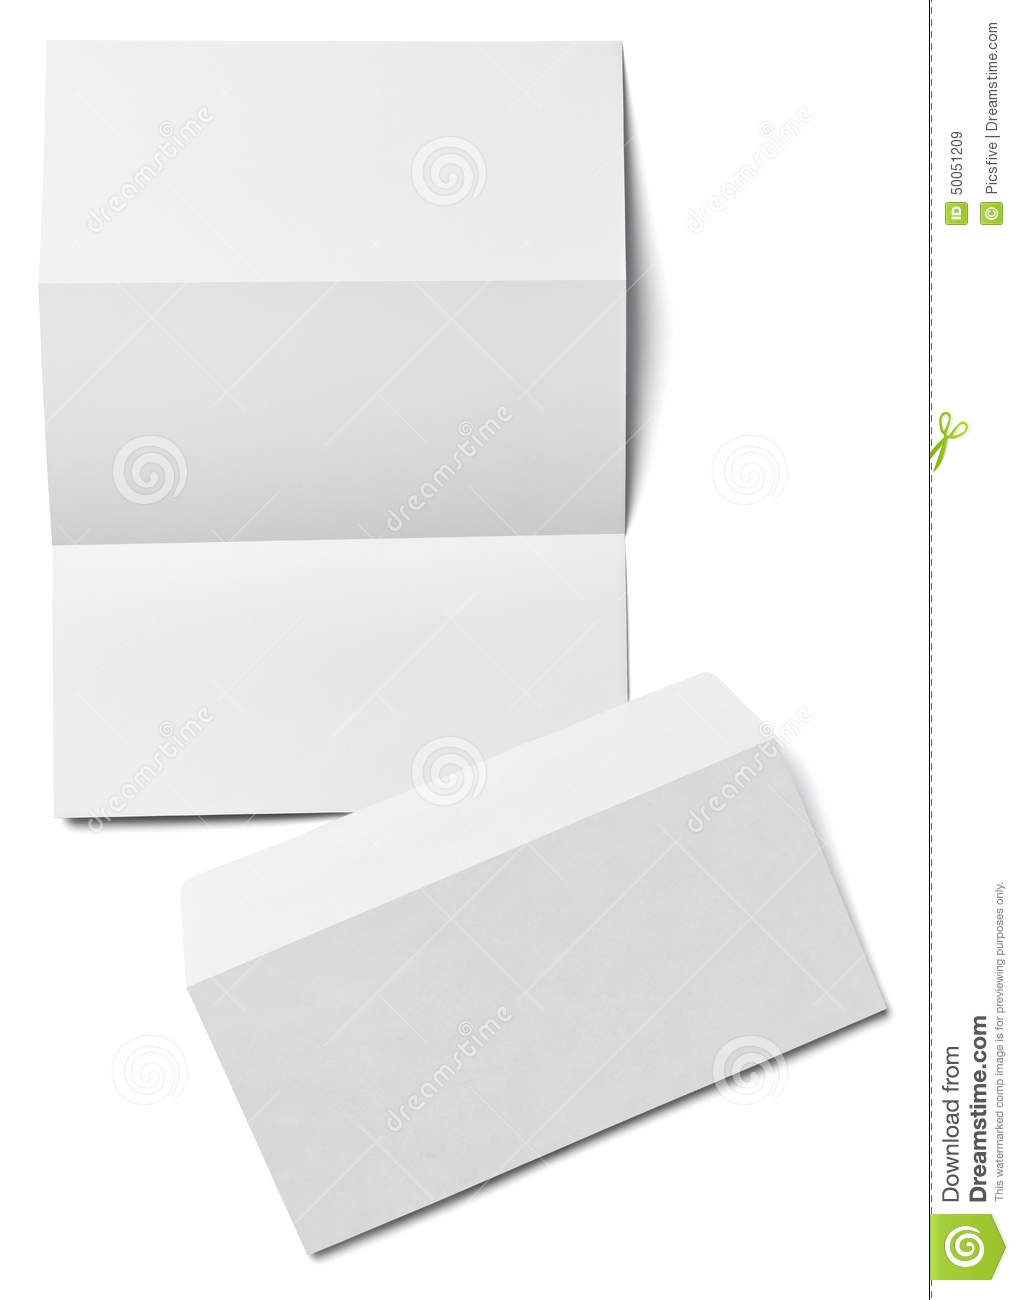 Comfortable Blank Business Card Paper Images - Business Card Ideas ...